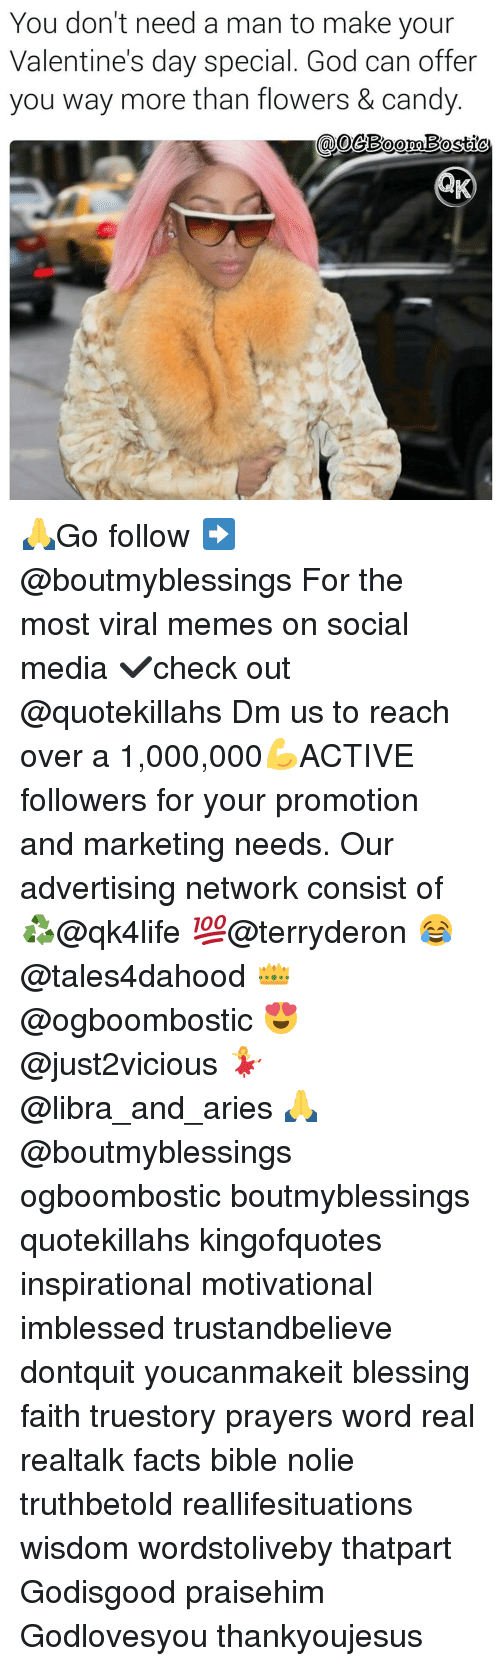 Advertise Network: You don't need a man to make your  Valentine's day special. God can offer  you way more than flowers & candy 🙏Go follow ➡@boutmyblessings For the most viral memes on social media ✔check out @quotekillahs Dm us to reach over a 1,000,000💪ACTIVE followers for your promotion and marketing needs. Our advertising network consist of ♻@qk4life 💯@terryderon 😂@tales4dahood 👑@ogboombostic 😍@just2vicious 💃@libra_and_aries 🙏@boutmyblessings ogboombostic boutmyblessings quotekillahs kingofquotes inspirational motivational imblessed trustandbelieve dontquit youcanmakeit blessing faith truestory prayers word real realtalk facts bible nolie truthbetold reallifesituations wisdom wordstoliveby thatpart Godisgood praisehim Godlovesyou thankyoujesus